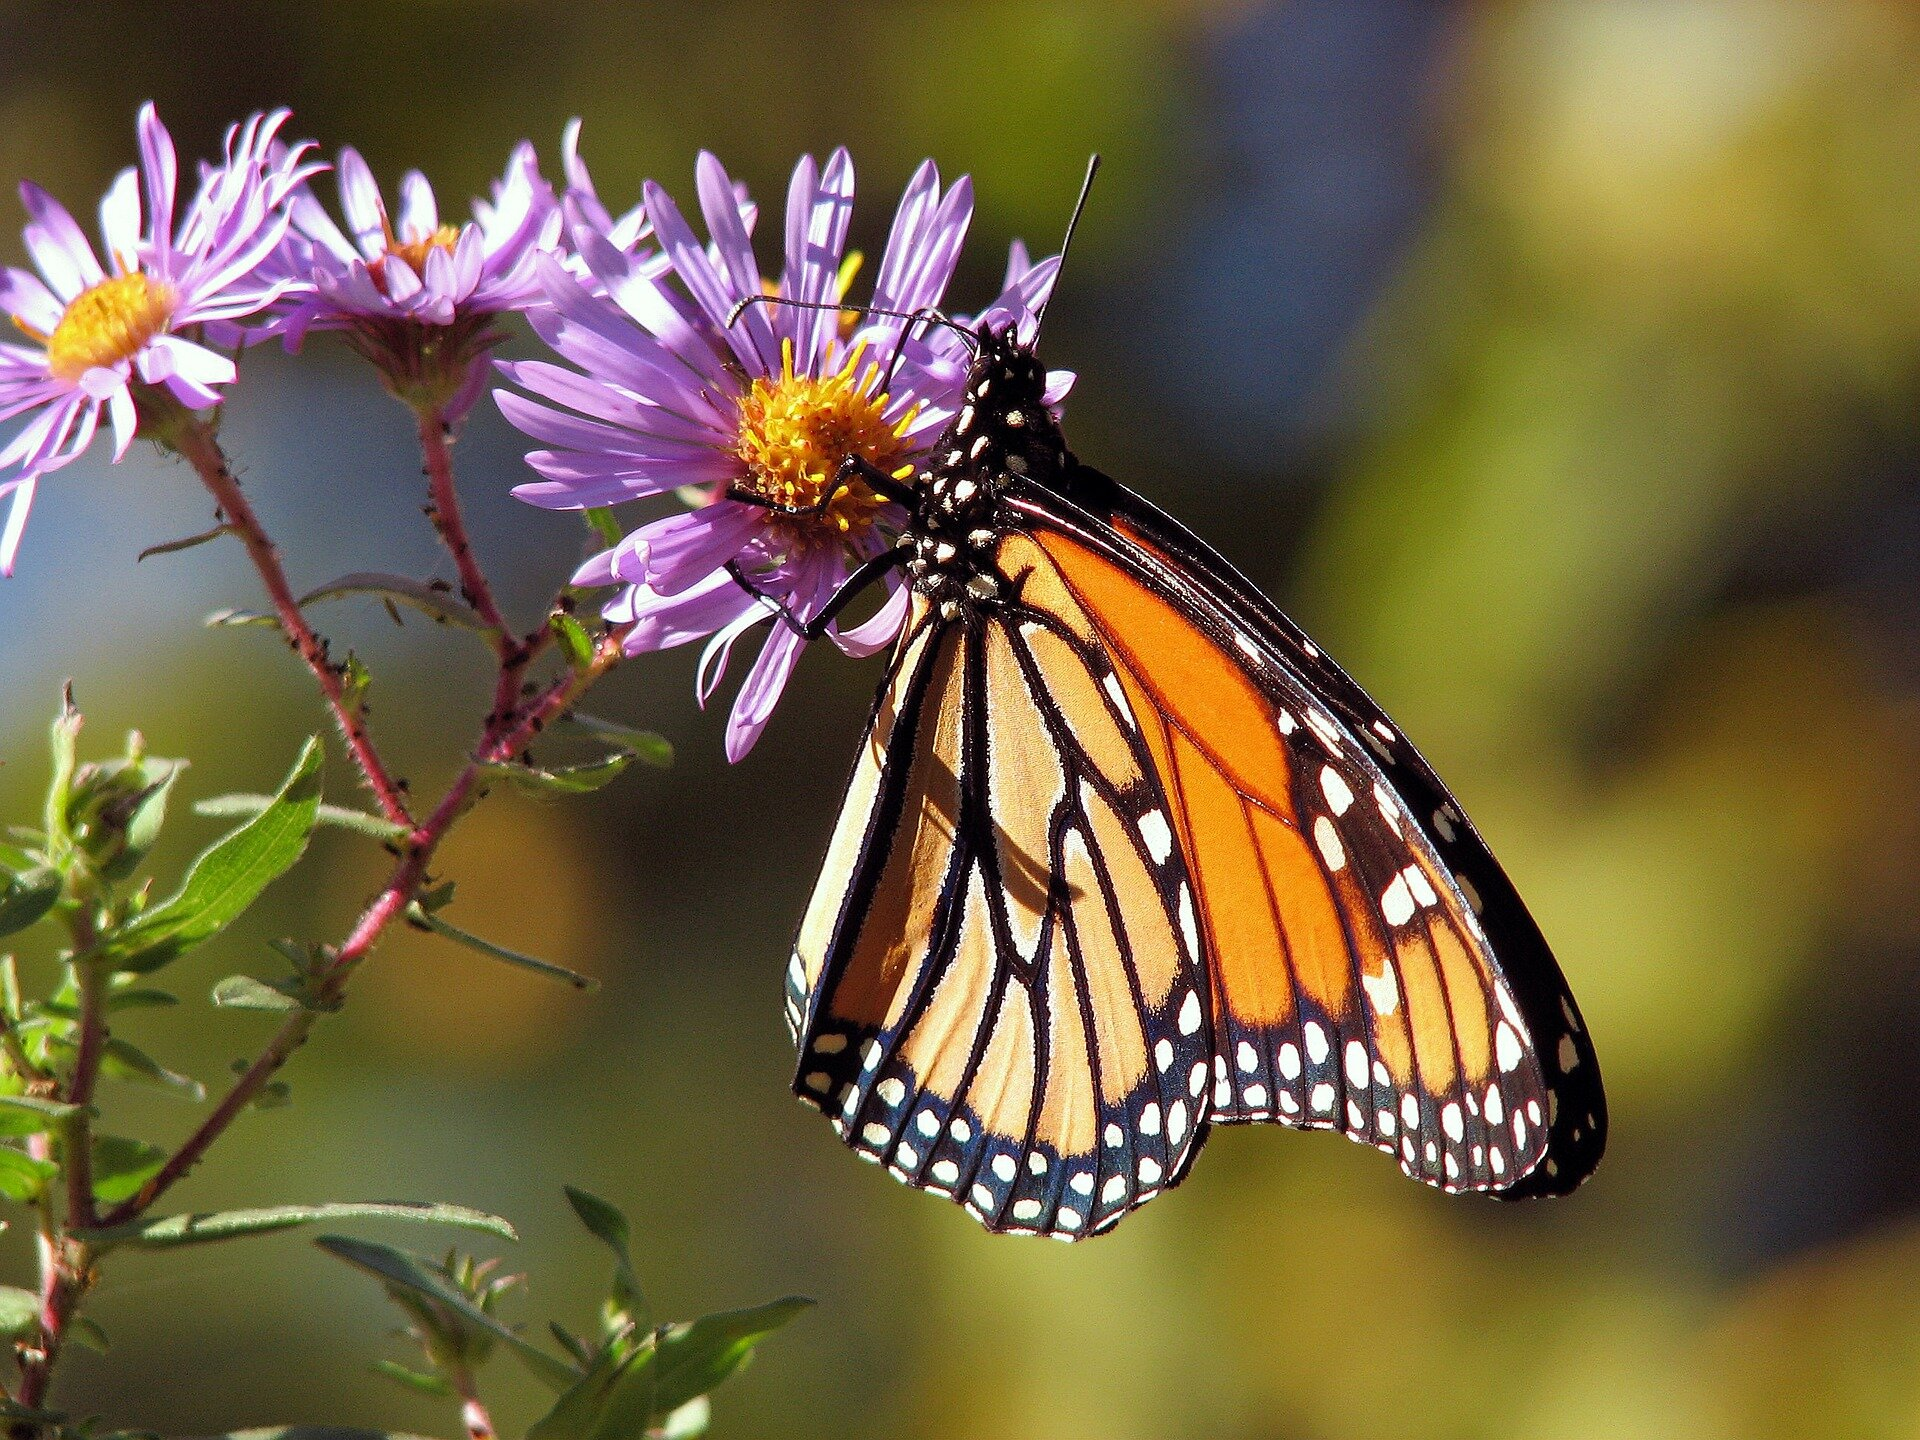 Researchers find neonicotinoids present a danger to pollinators